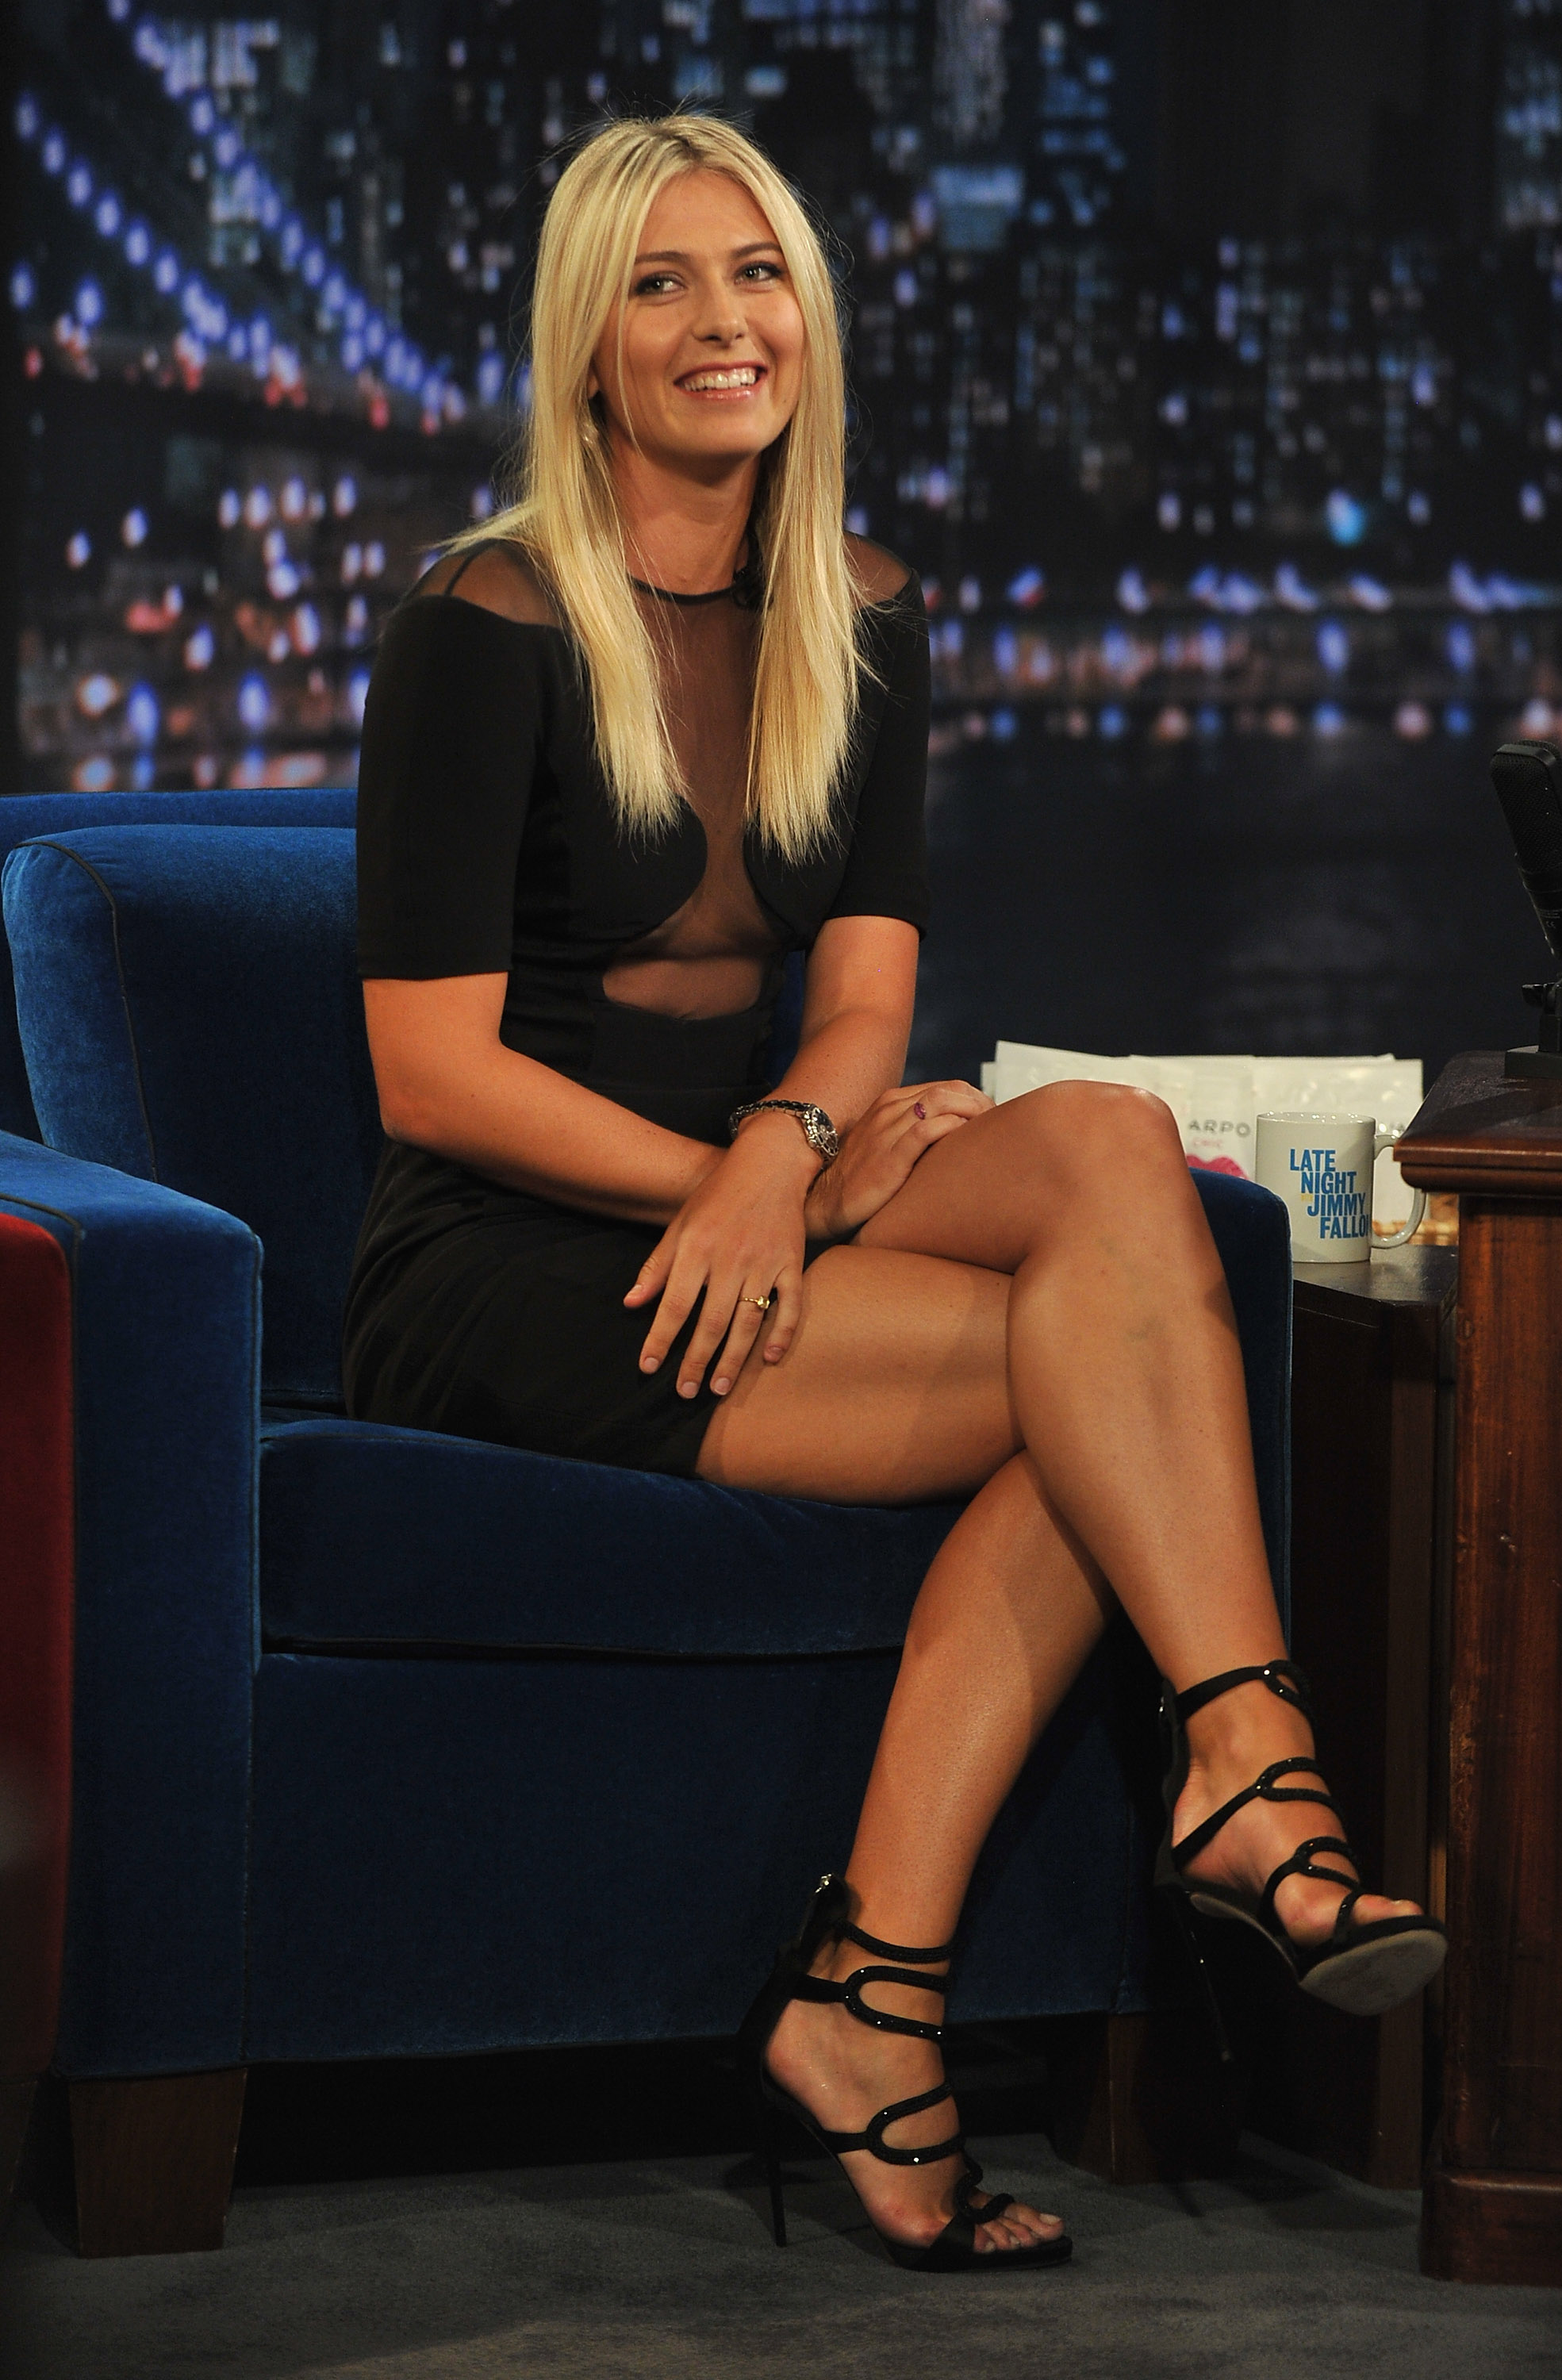 Maria Sharapova's Feet